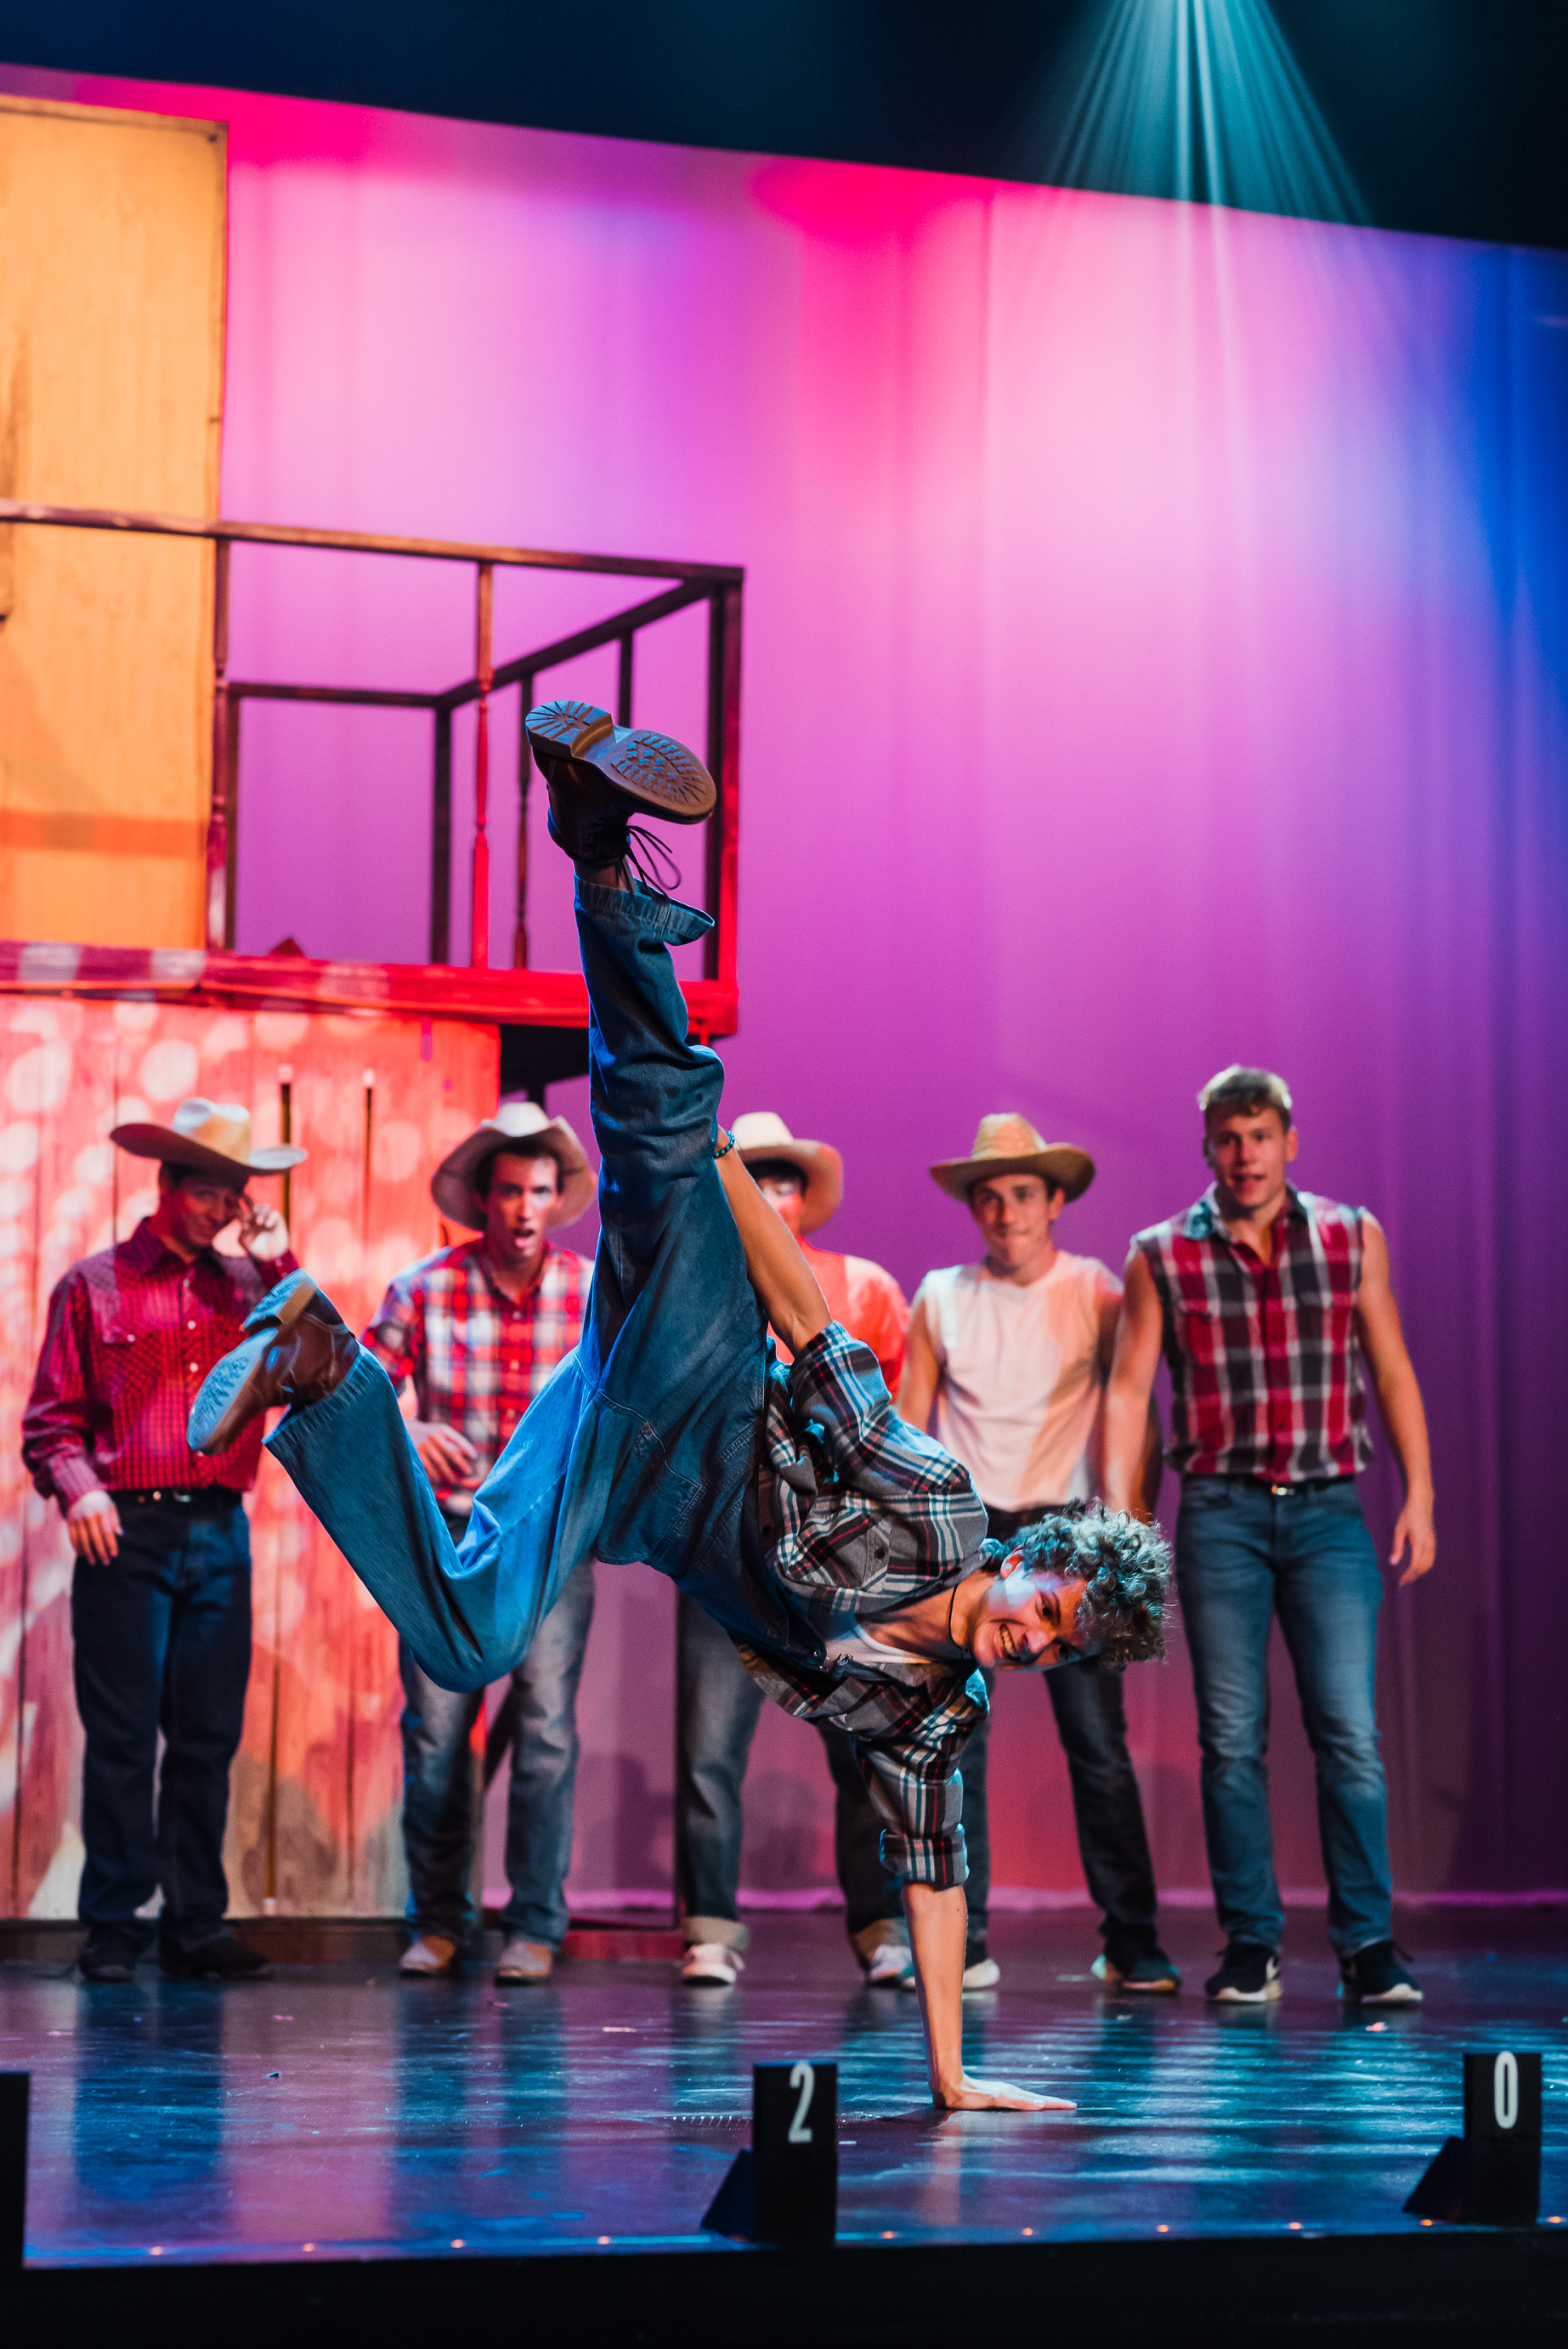 """Willard (Nolan Van Haren) busts a move after learning how to dance at a nightclub in a scene from Sudbrink Performance Academy's """"Footloose."""""""